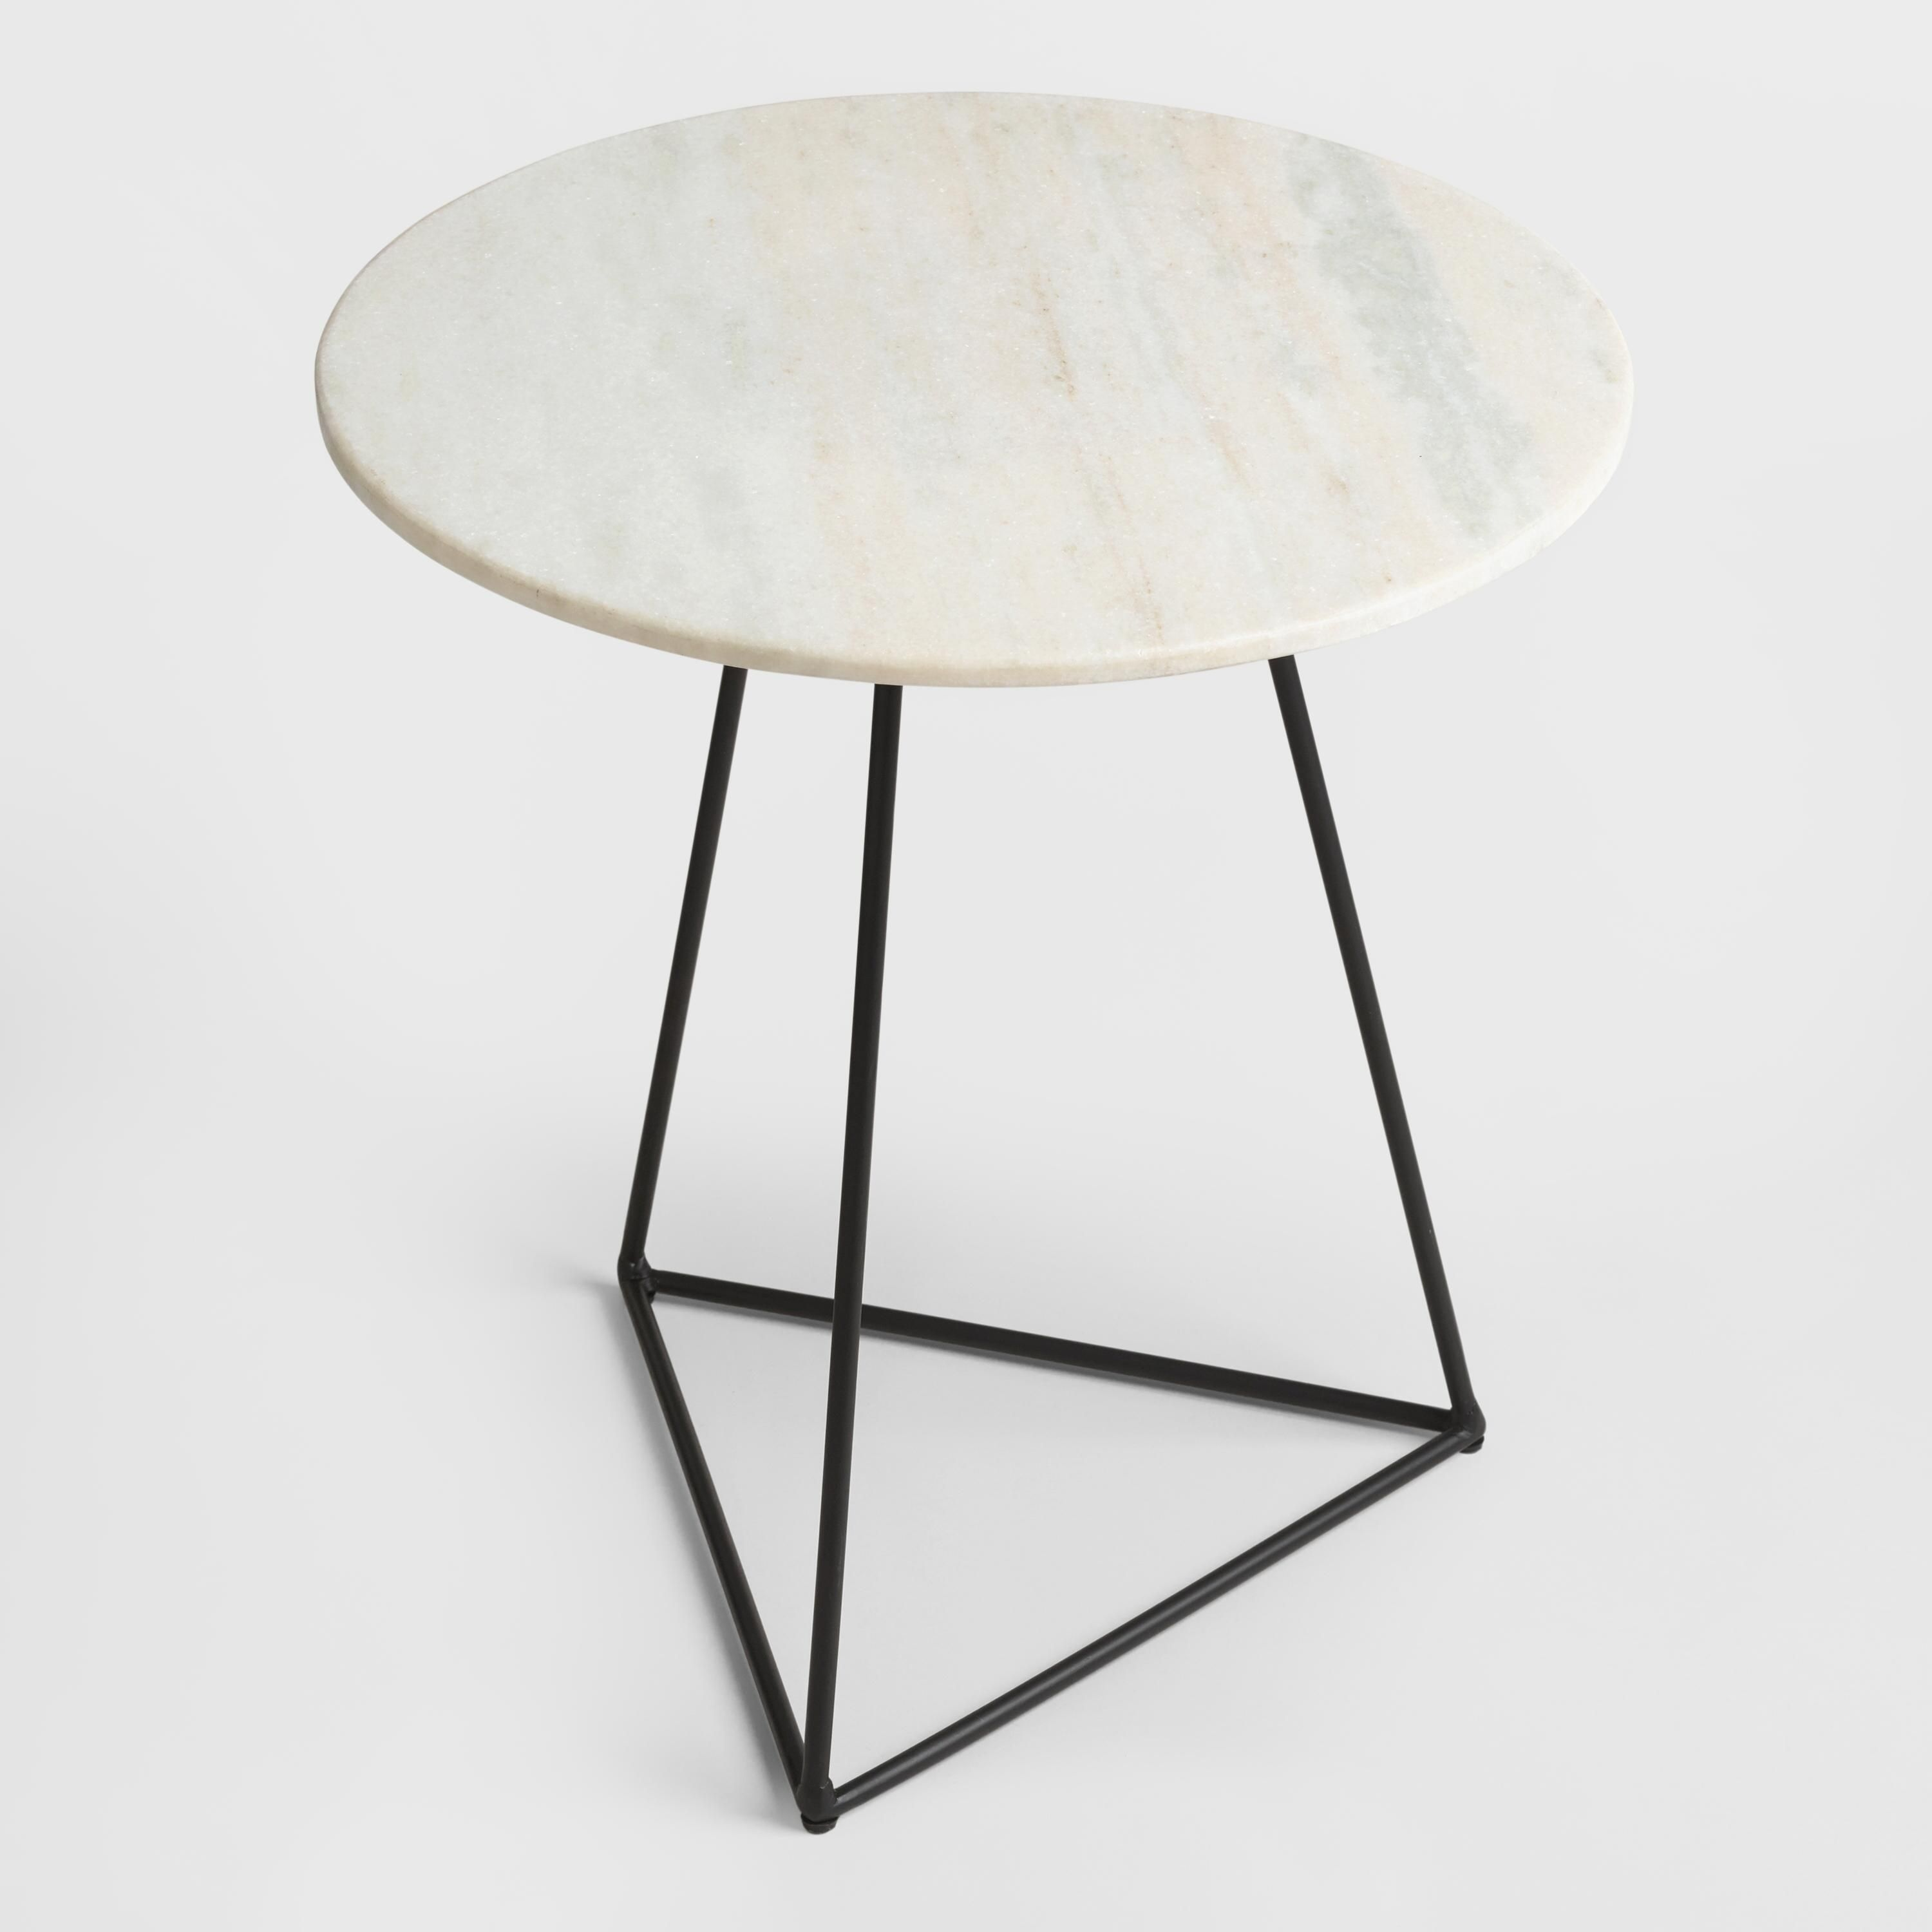 white marble and metal round accent table tables bistro world market lamp shades living room packages small chair hampton bay patio furniture cushions trunk green kitchen rod iron